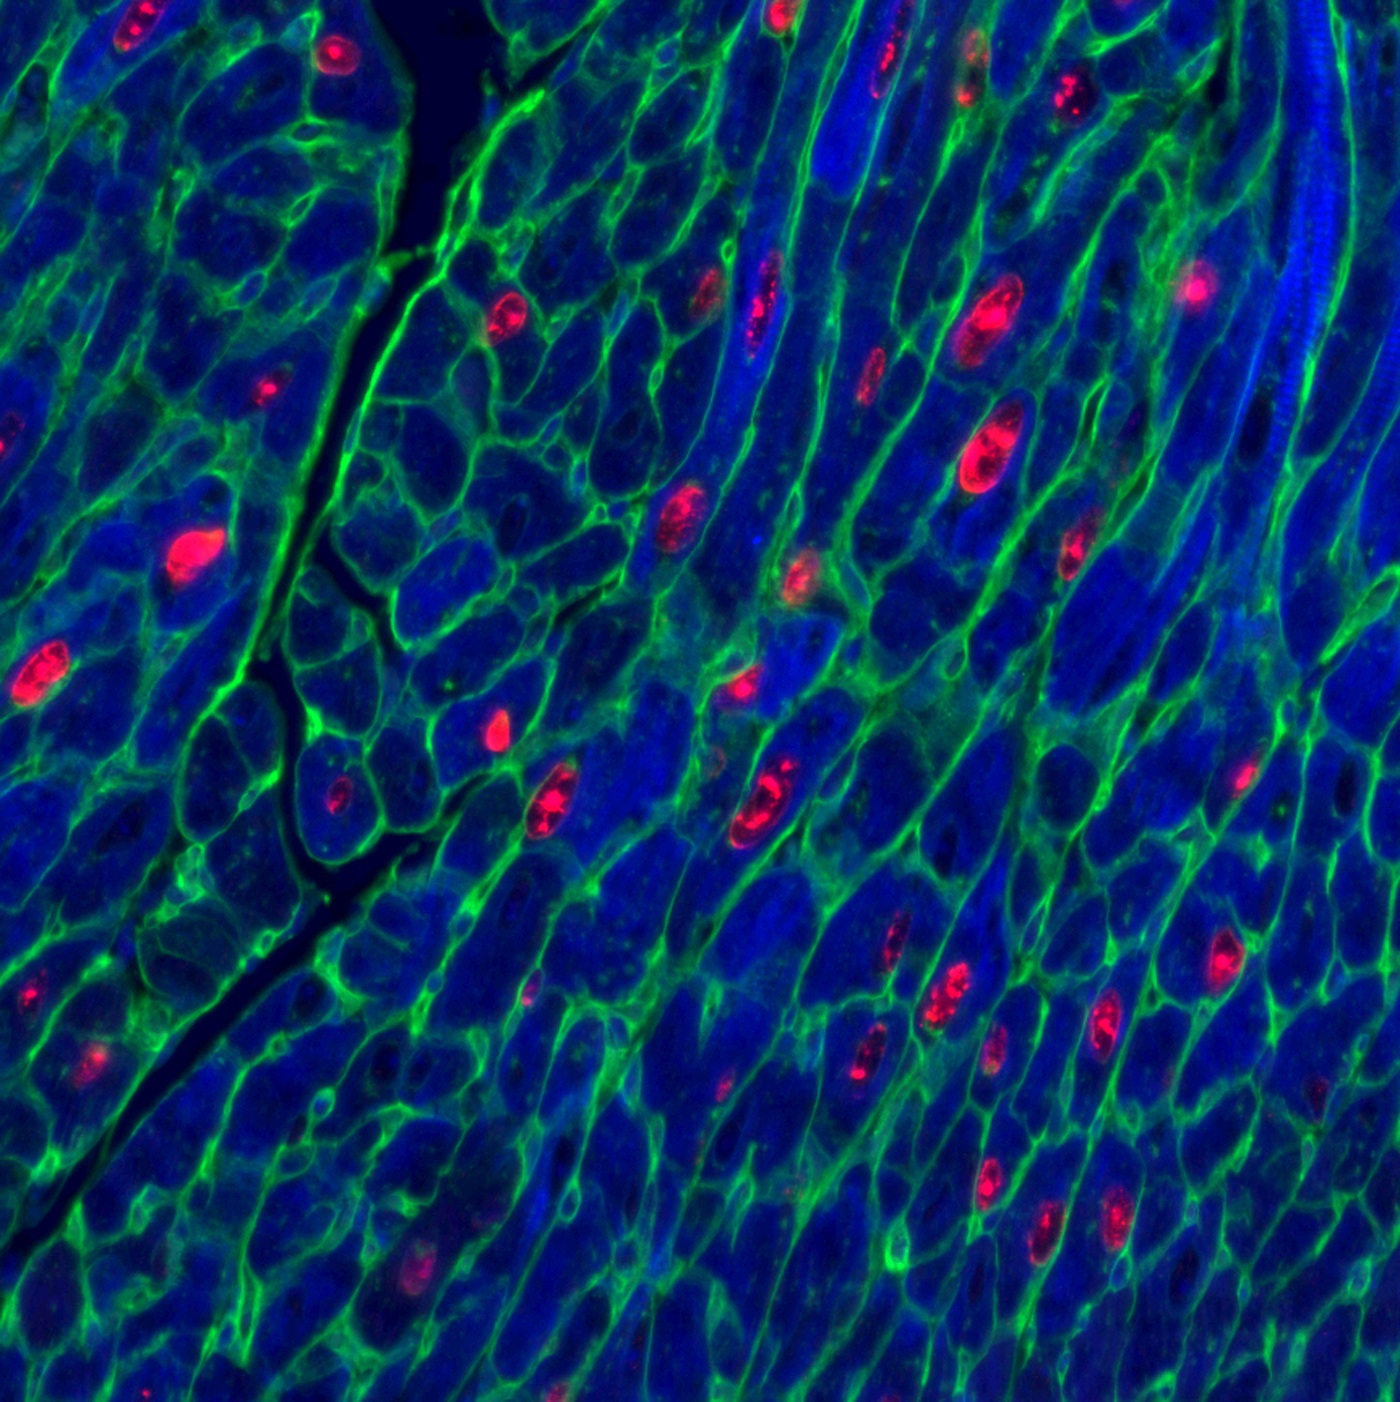 Adult mouse heart muscle cells (blue) after activation of proteins vital for cell replication. Red shows cells replica ting, green marks cell membrane